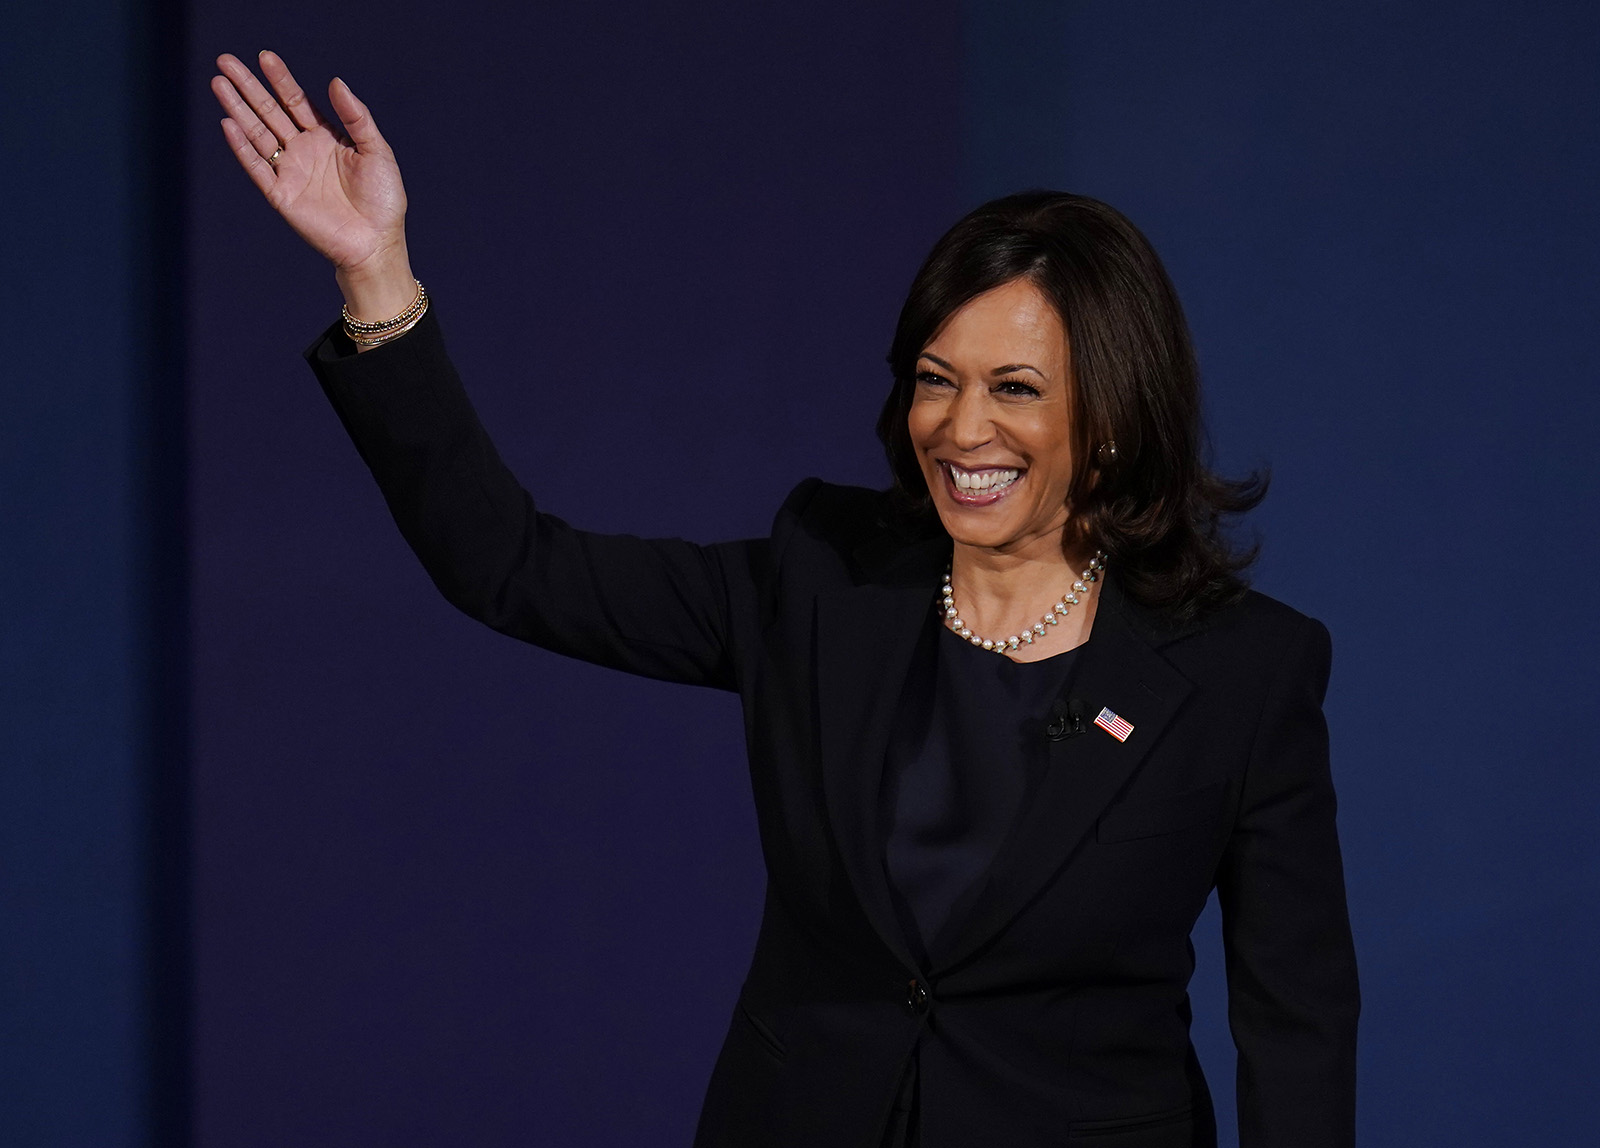 Democratic vice presidential candidate Sen. Kamala Harris waves as she arrives on stage for the vice presidential debate with Vice President Mike Pence on Wednesday, Oct. 7, at Kingsbury Hall on the campus of the University of Utah in Salt Lake City.